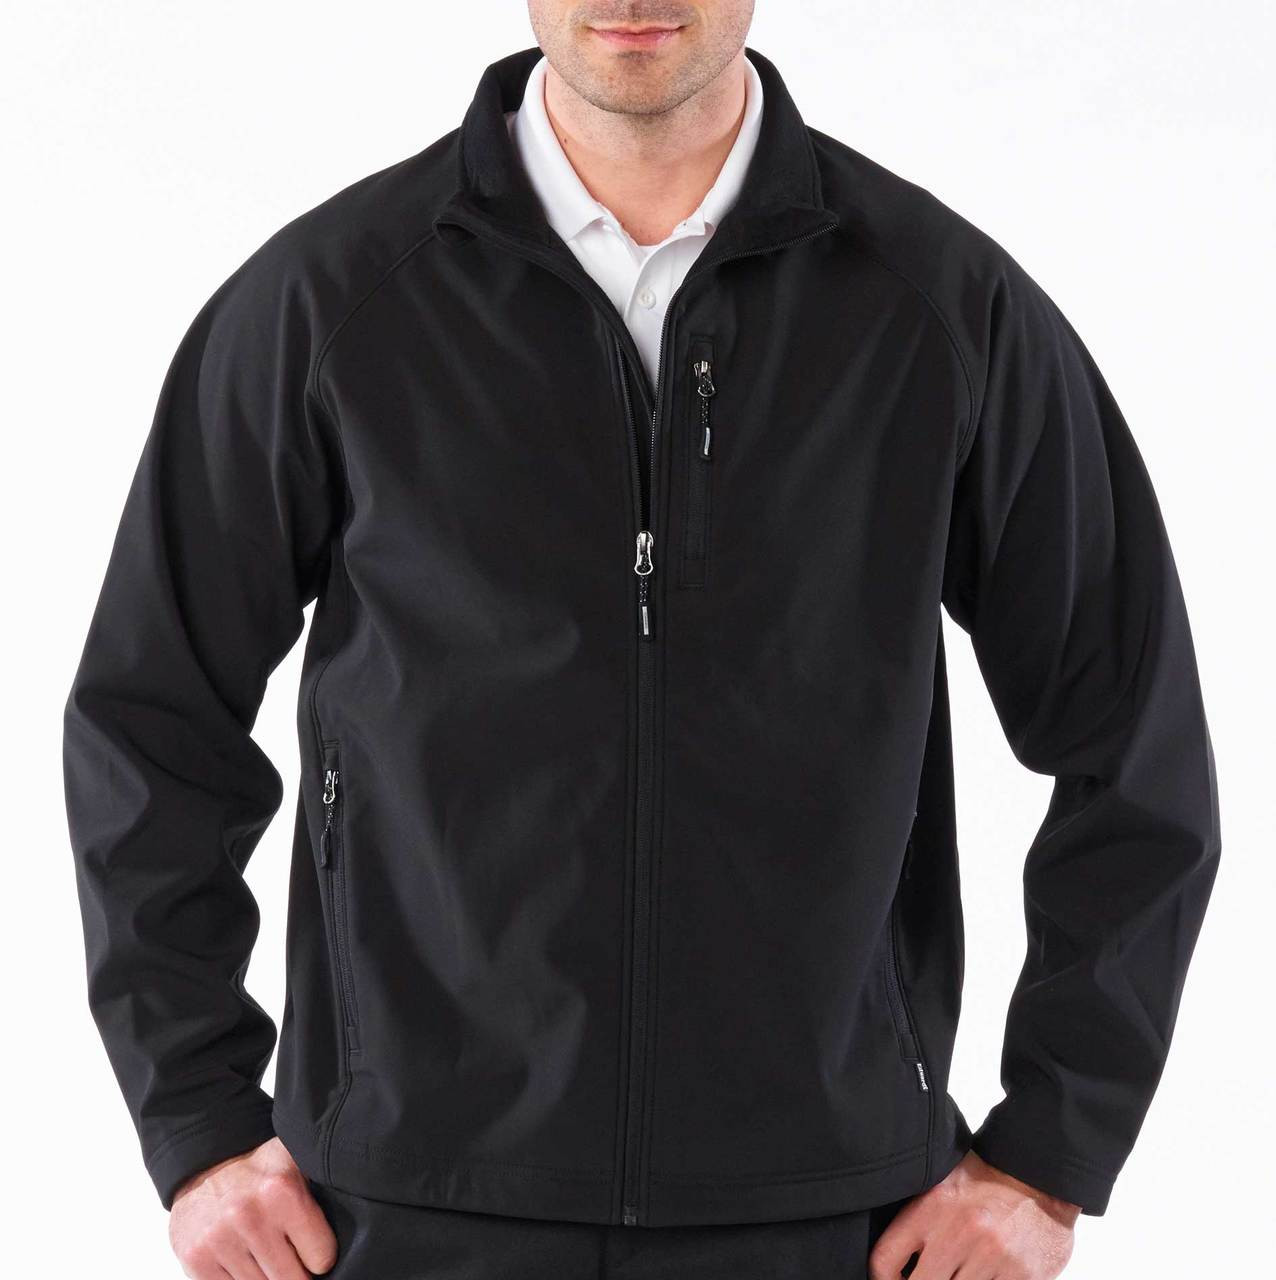 Soft Shell Employee Jacket